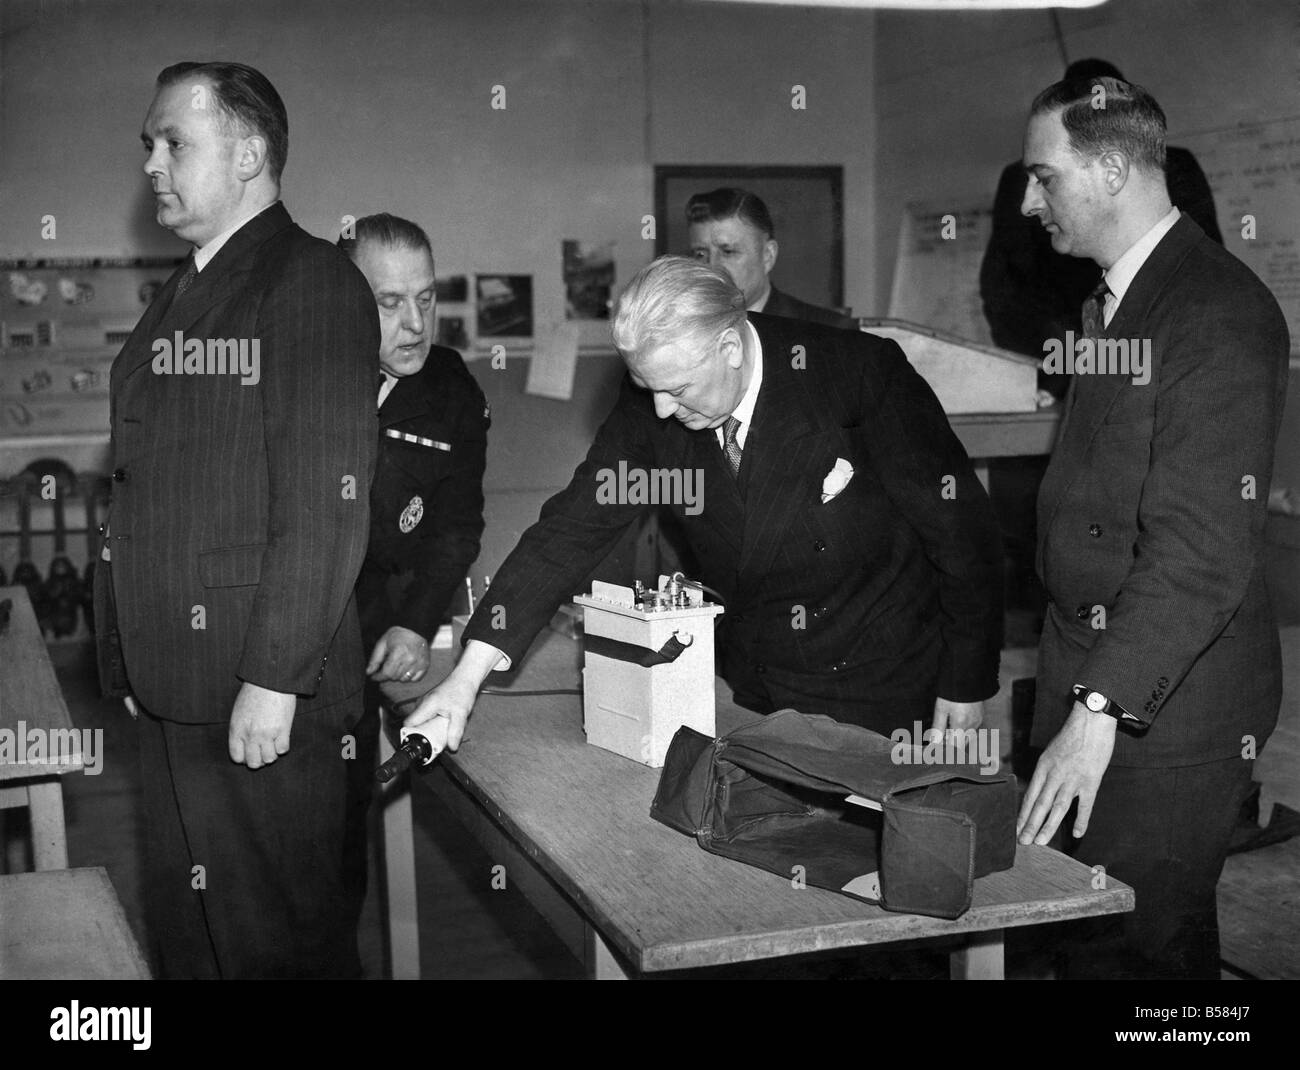 Manchester Civil Defence first demonstration of Radioactive detection. Ald D. Gosling, Chairman of the Civil Defence - Stock Image